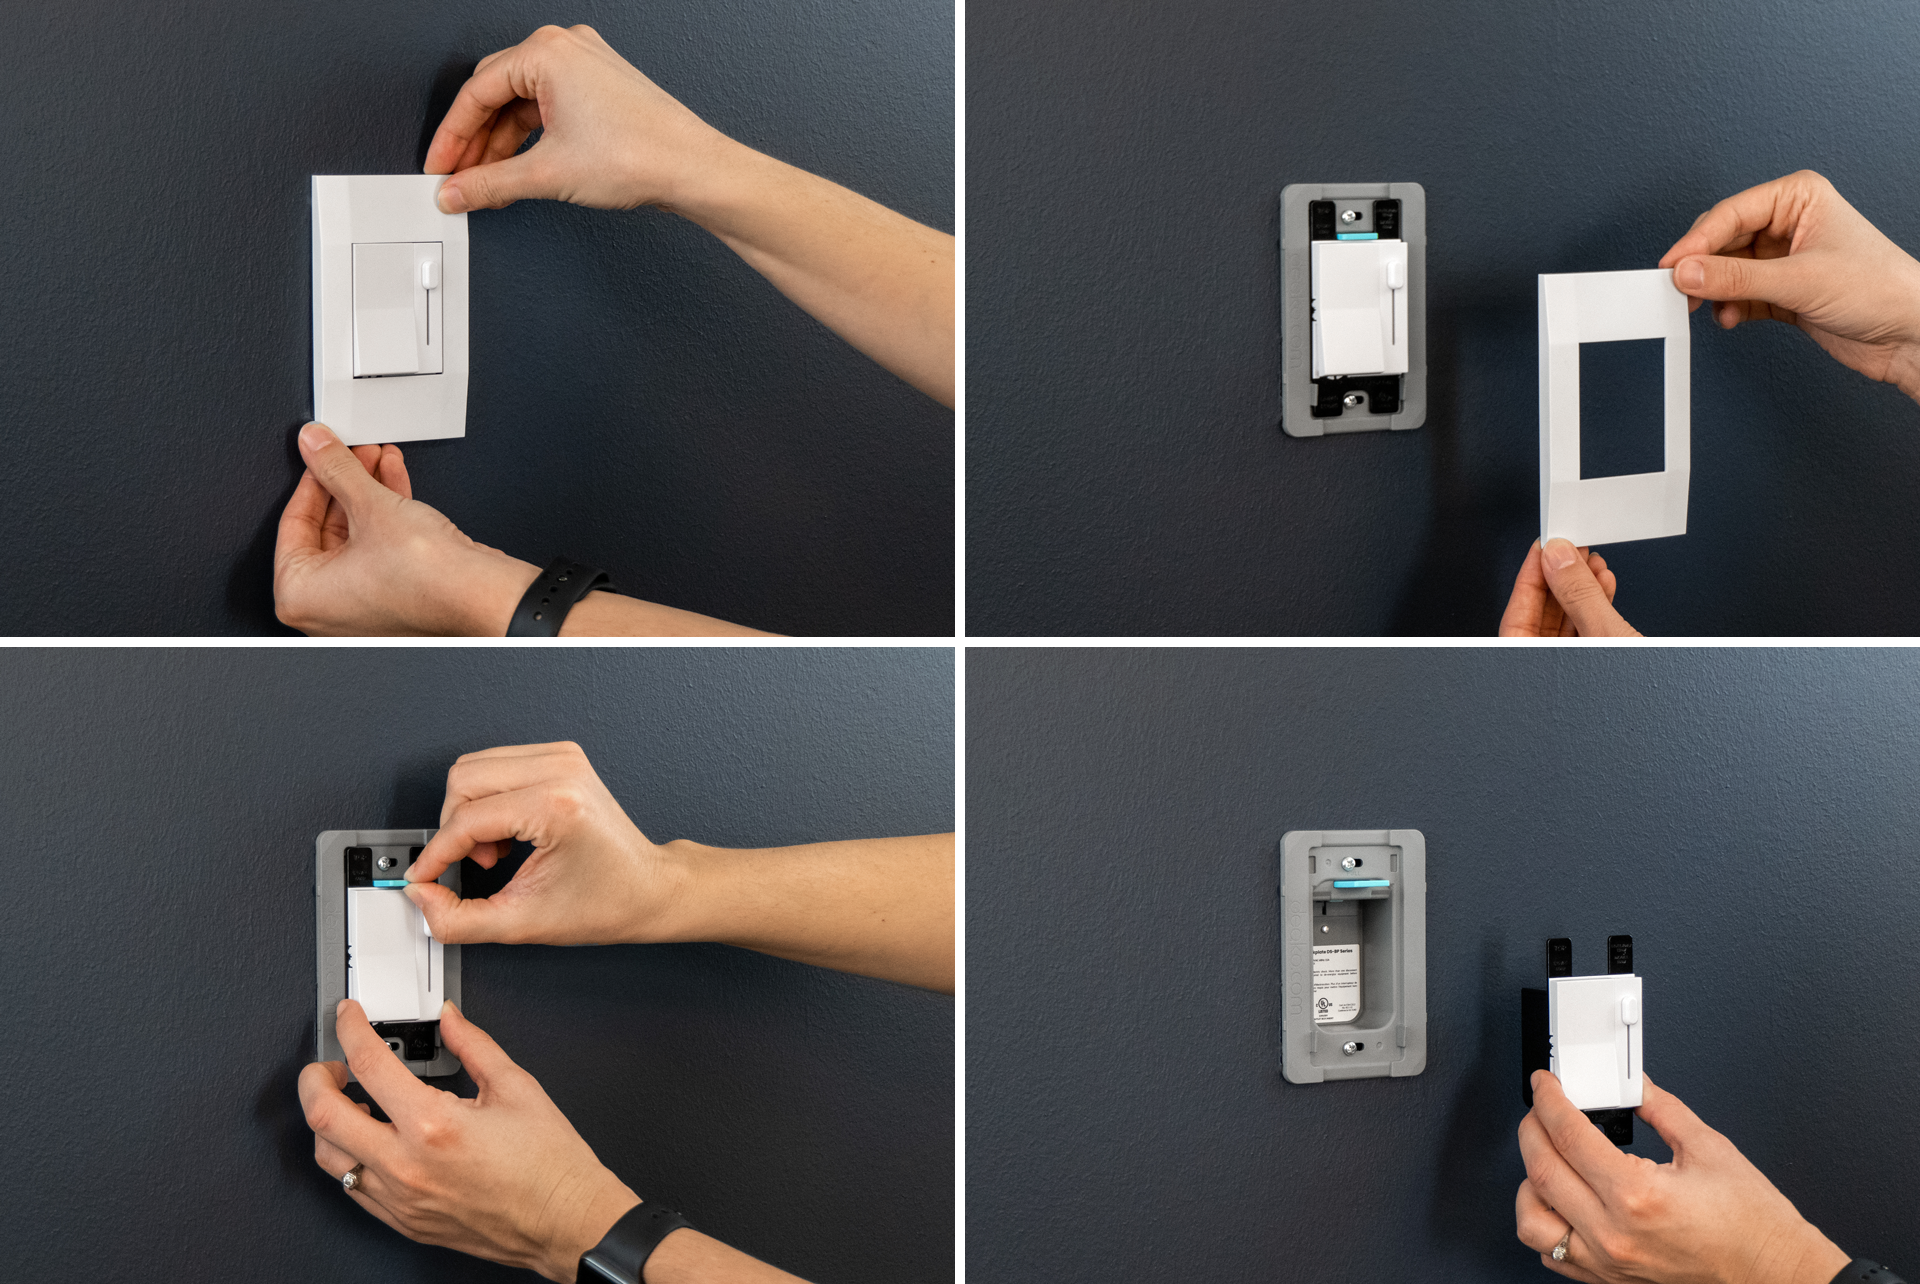 Smart home startup Deako raises $12.5M, says its light switches are becoming 'industry standard'